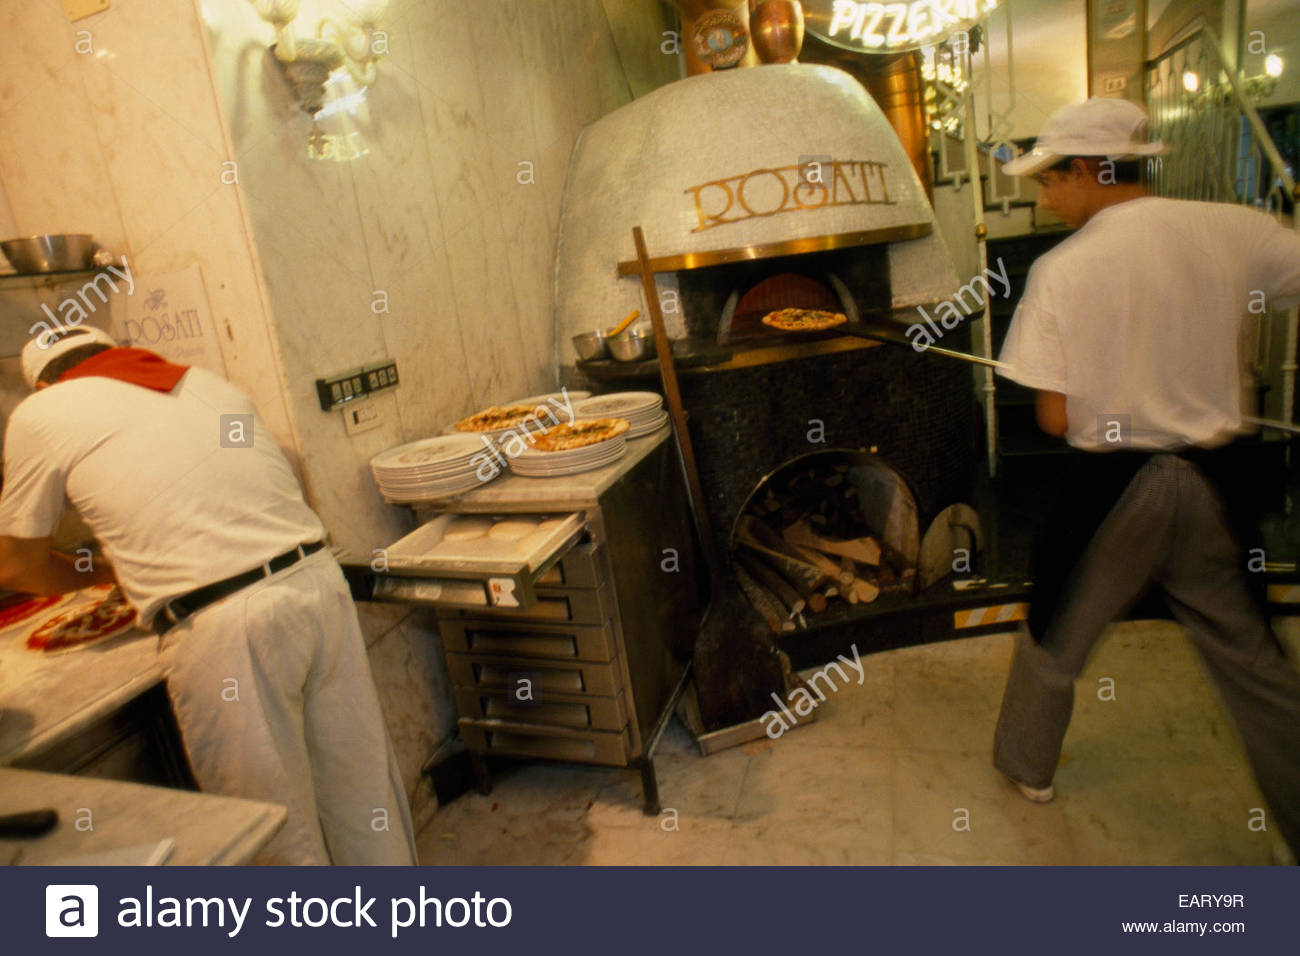 A skilled pizzaiolo working at Brandi, one of the city's pizzerias. - Stock Image